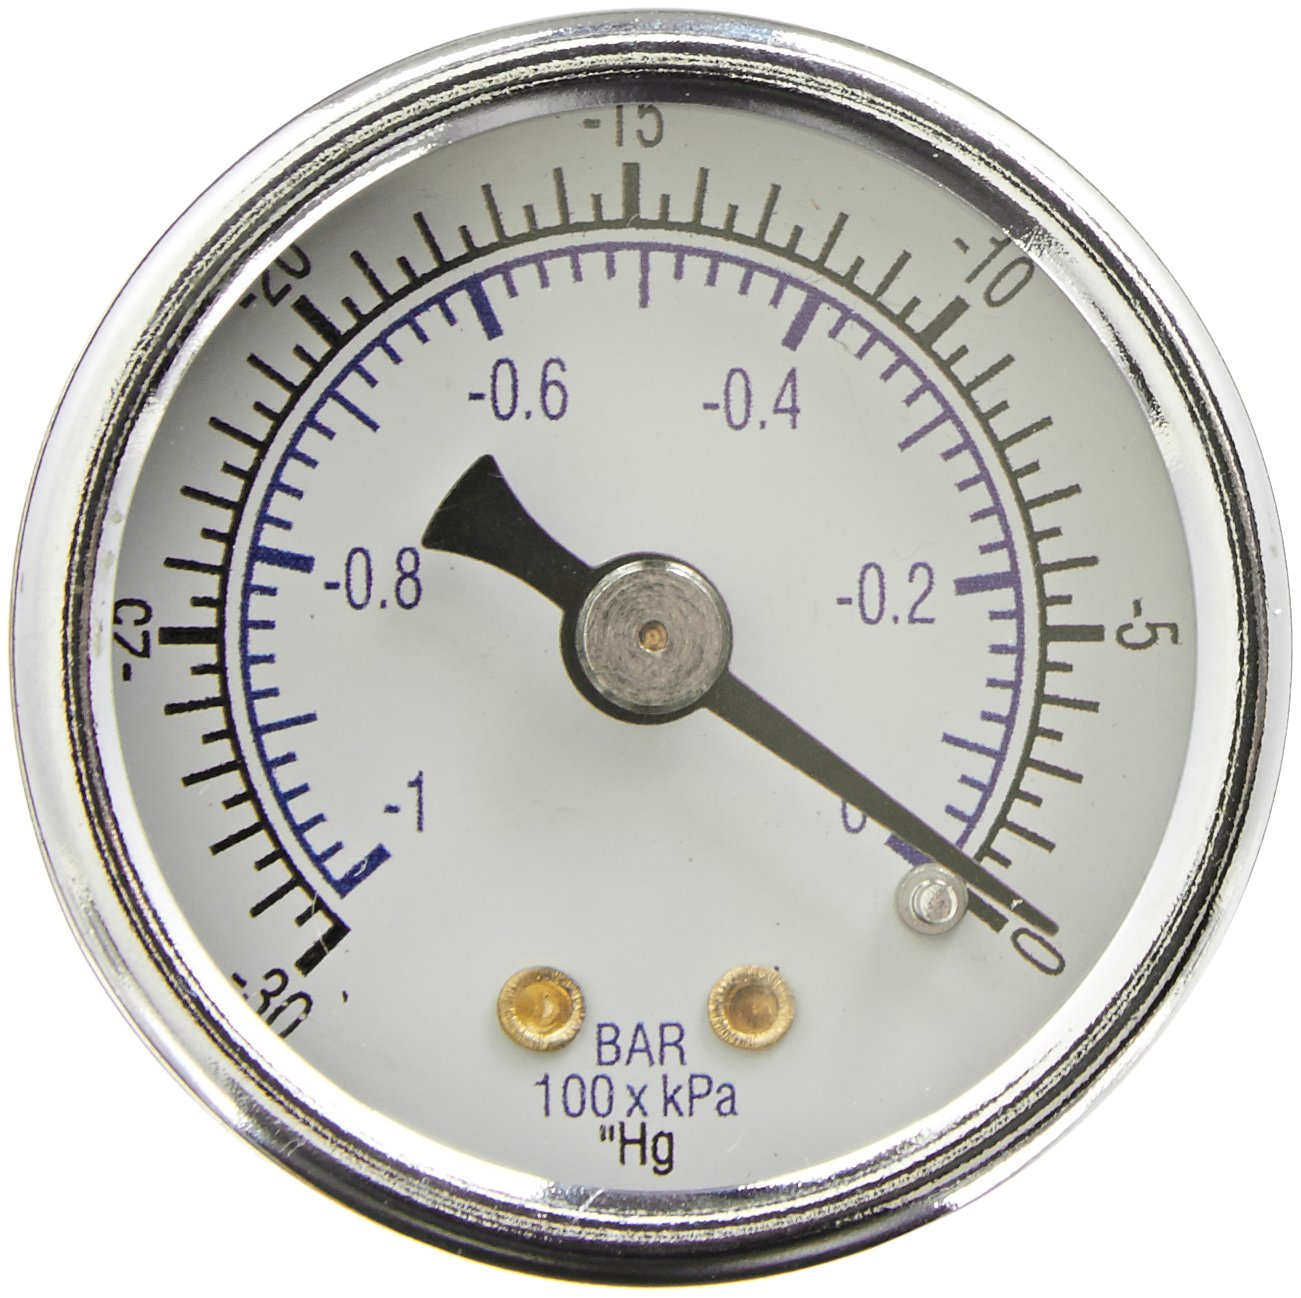 "PIC Gauge 102D-158A 1.5"" Dial, 30""/0 hg Vacuum psi Range, 1/8"" Male NPT Connection Size, Center Back Mount Dry Pressure Gauge with a Black Steel Case, Brass Internals, Chrome Bezel, and Plastic Lens"